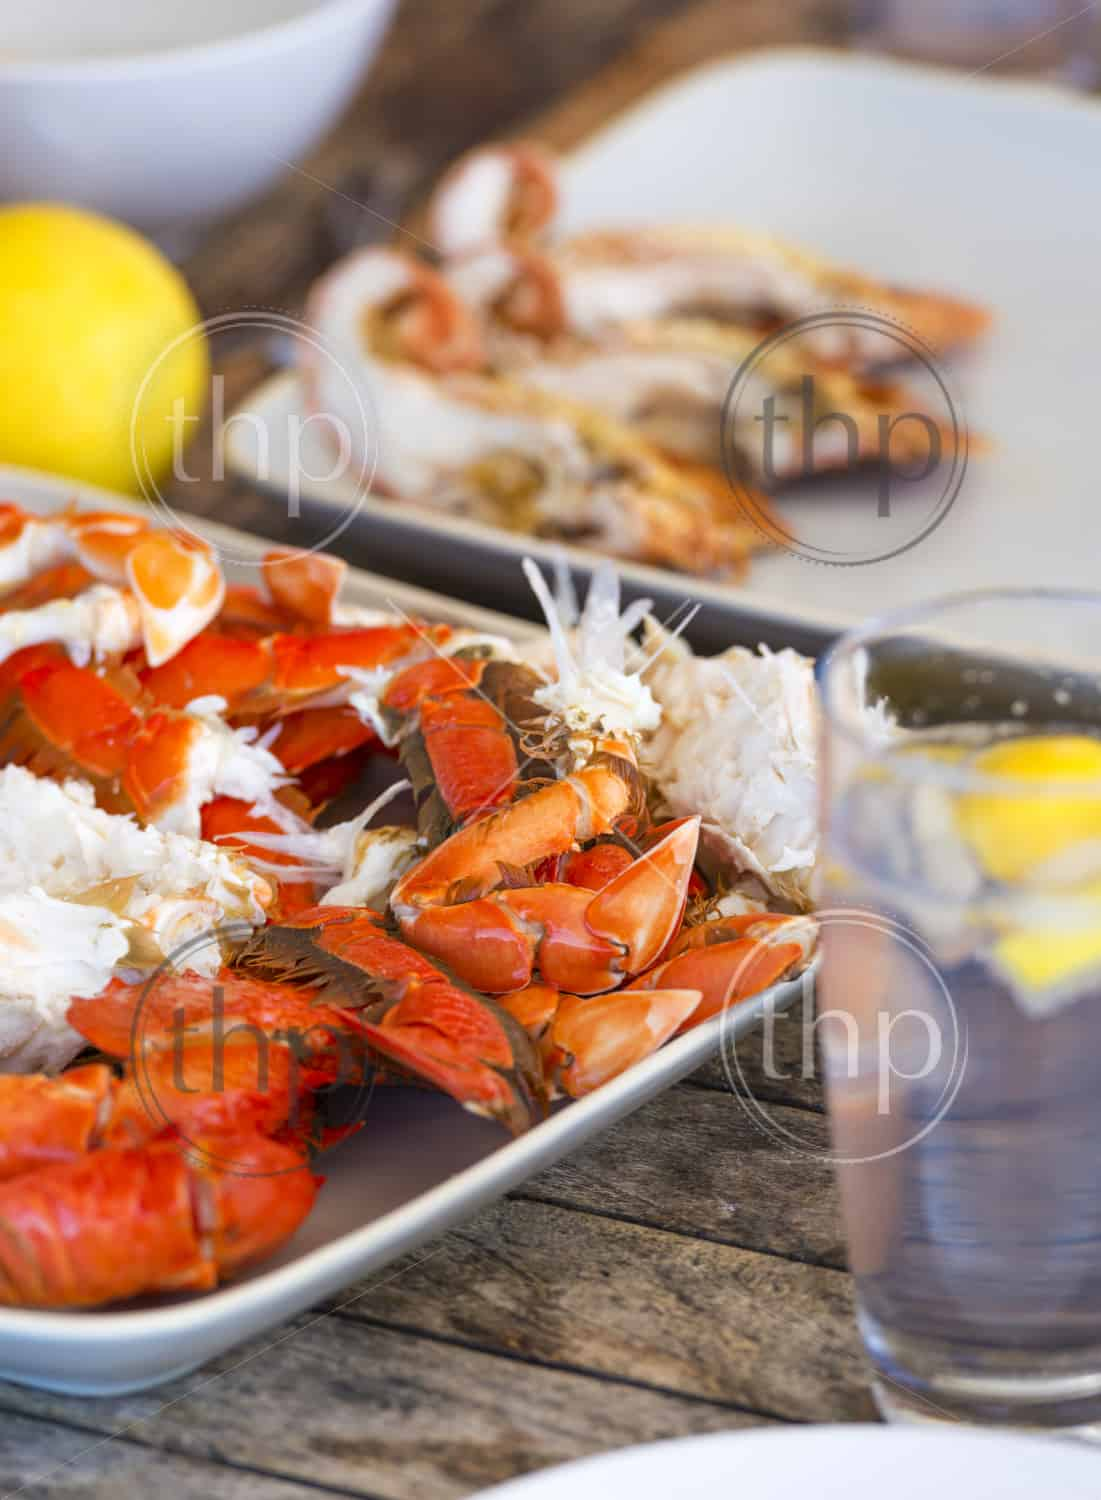 Australian Seafood Platter Lunch Of Crab And Moreton Bay Bugs Thpstock